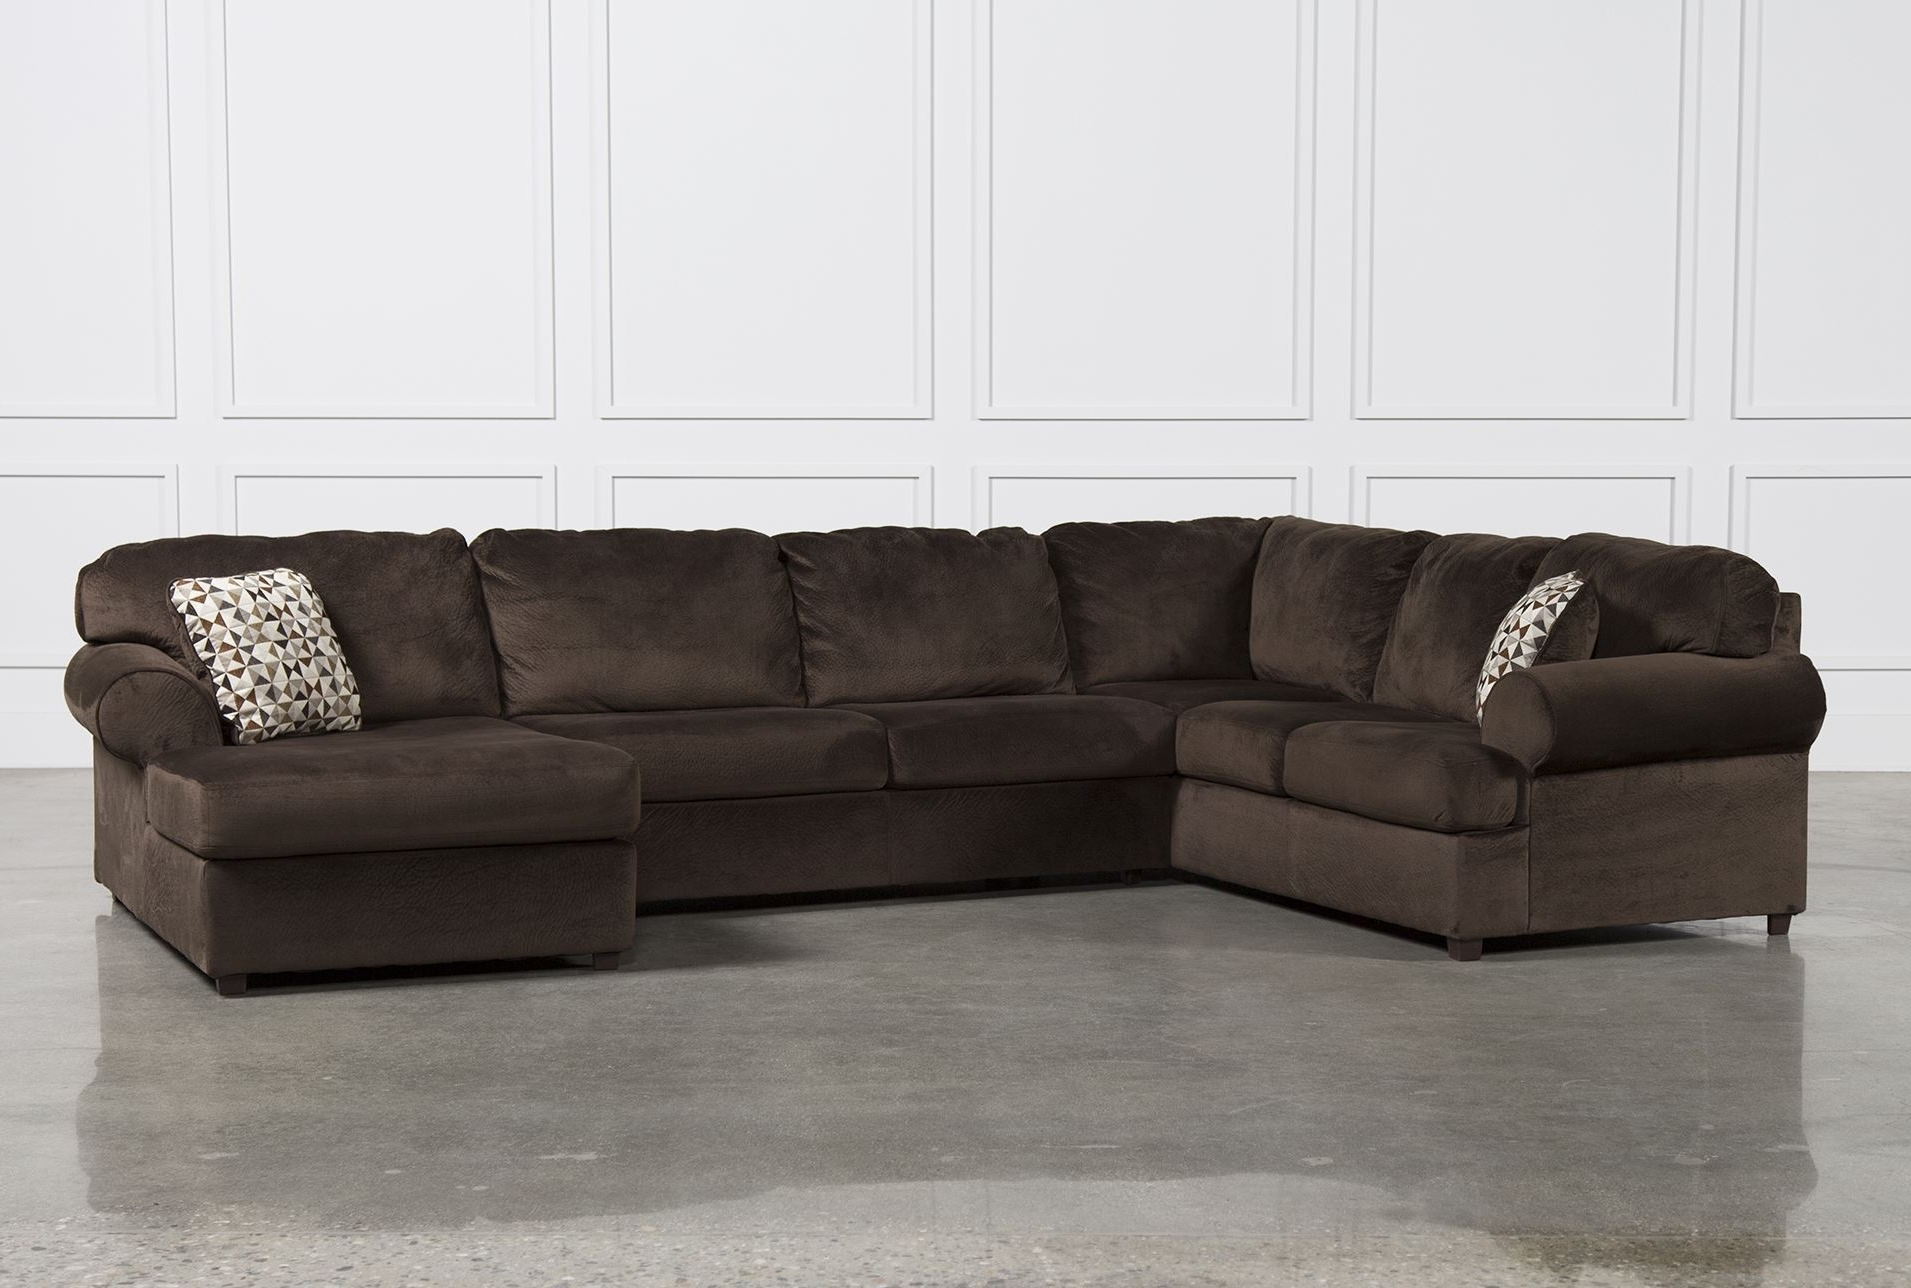 Plush Sectional Sofas – Tourdecarroll For Latest 3 Piece Sectional Sleeper Sofas (View 14 of 15)